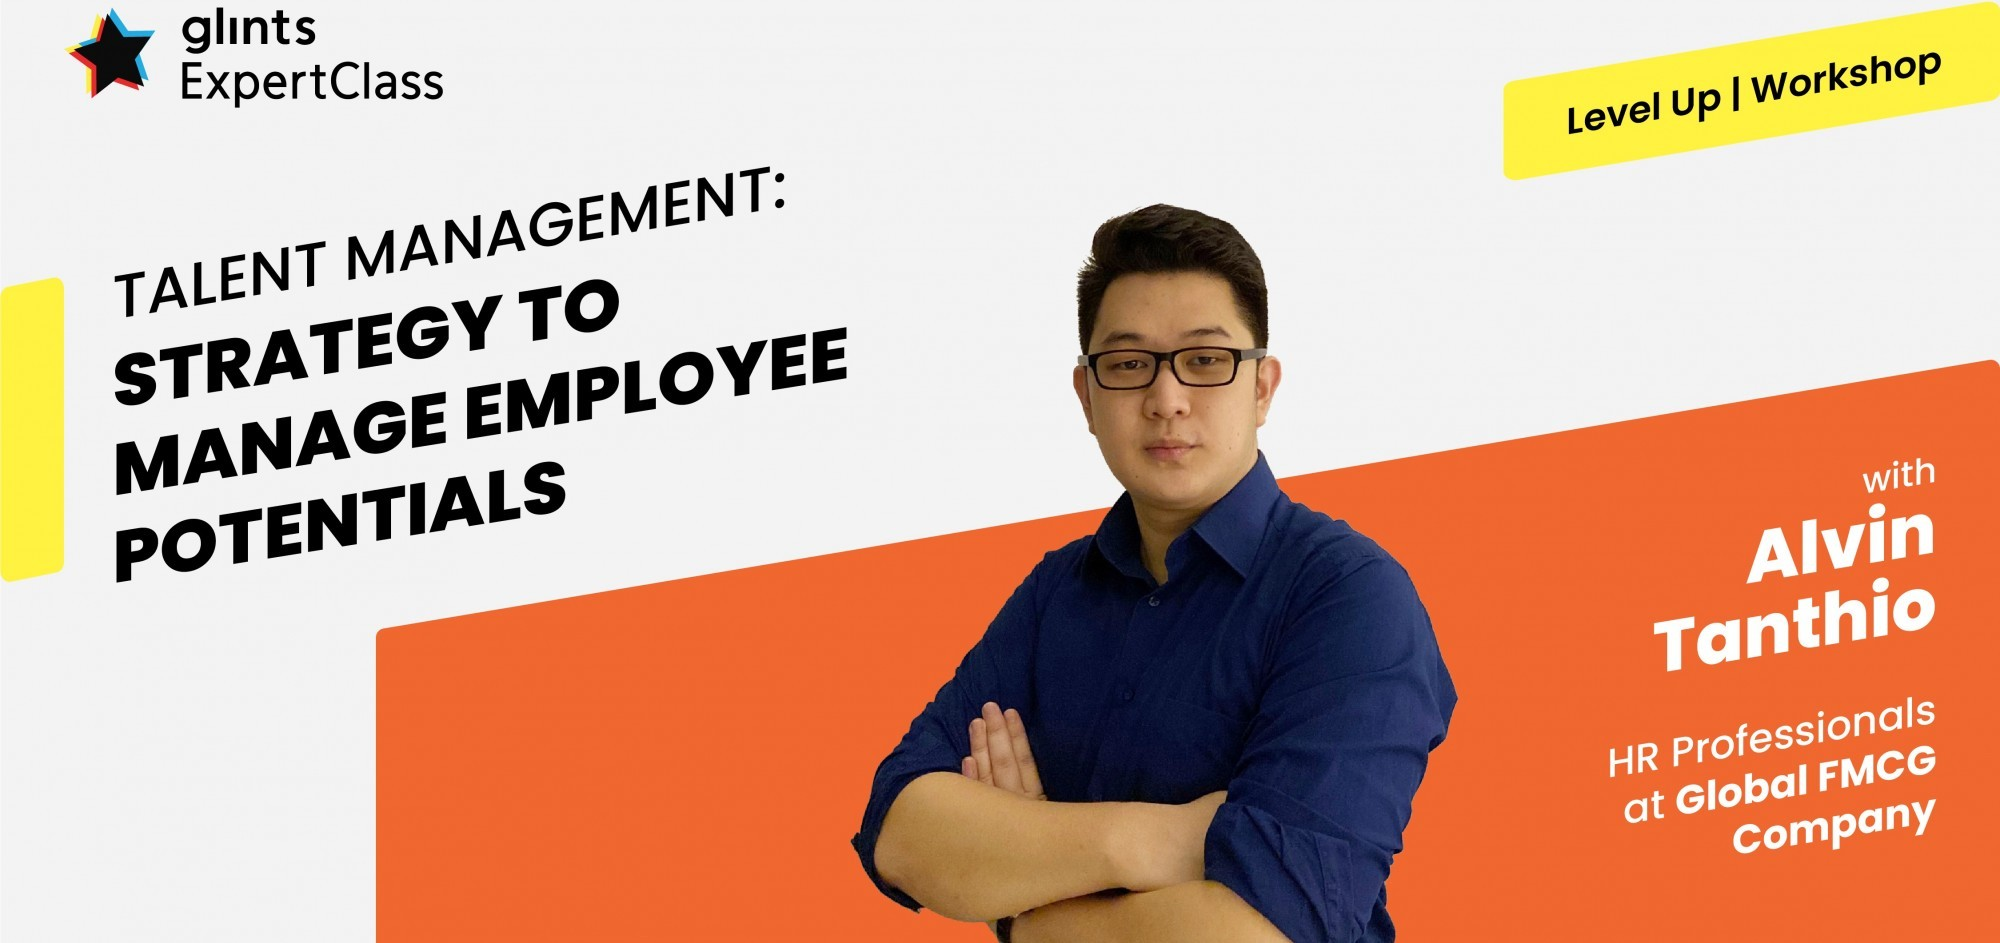 [Online Glints ExpertClass] Talent Management: Strategy to Manage Employee Potentials